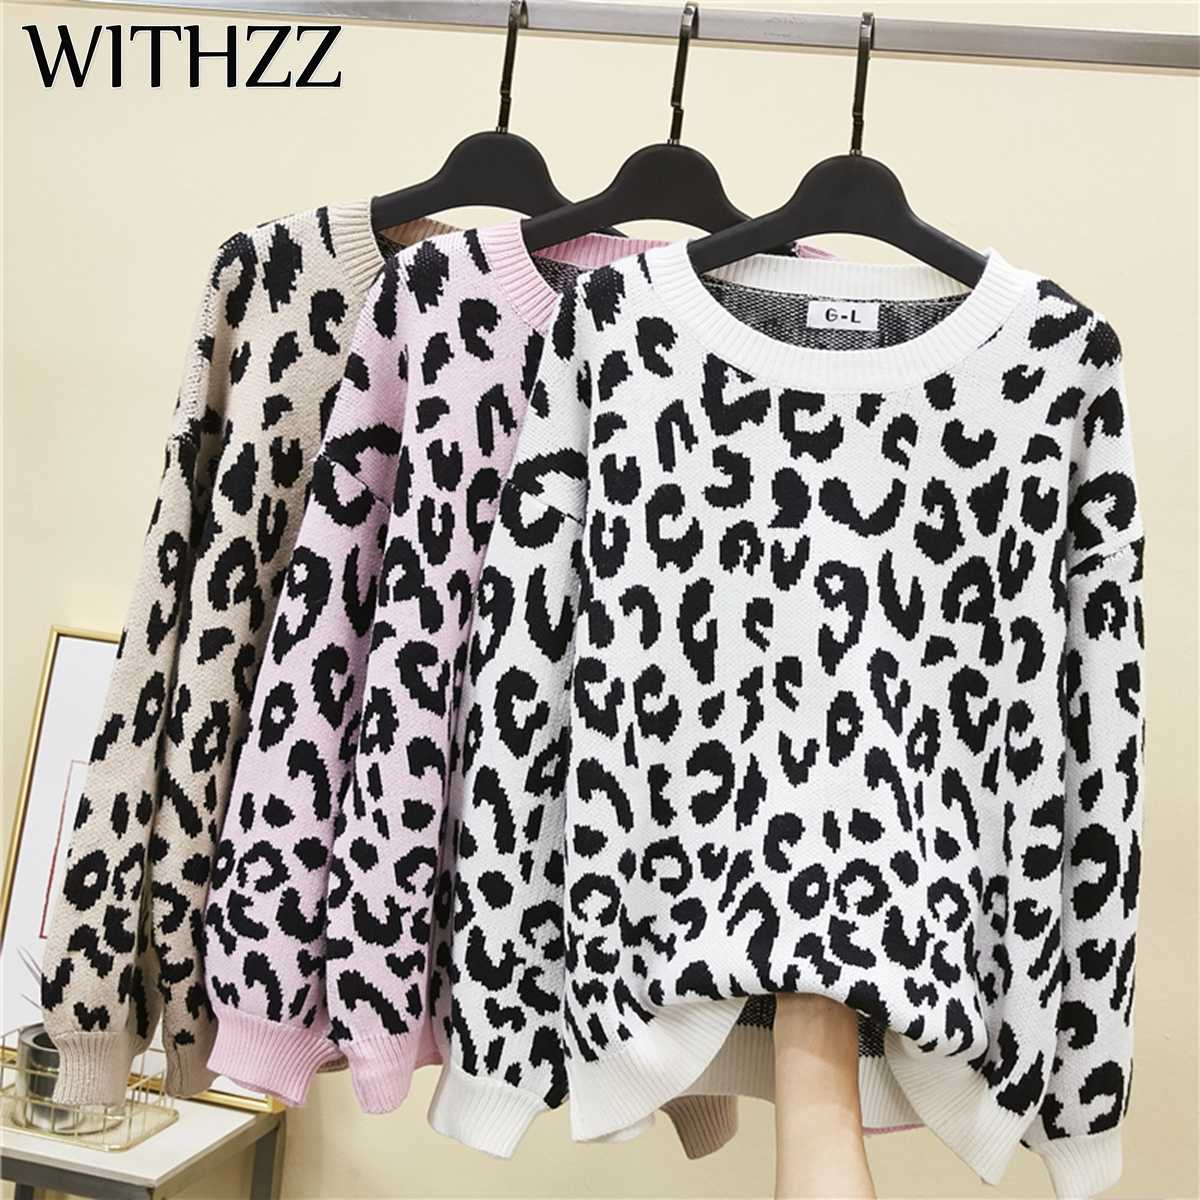 WITHZZ Spring Autumn New Arrival Women Leopard Print Knitting Sweater Fashion Pullovers Streetwear Casual Smock Loose Tops